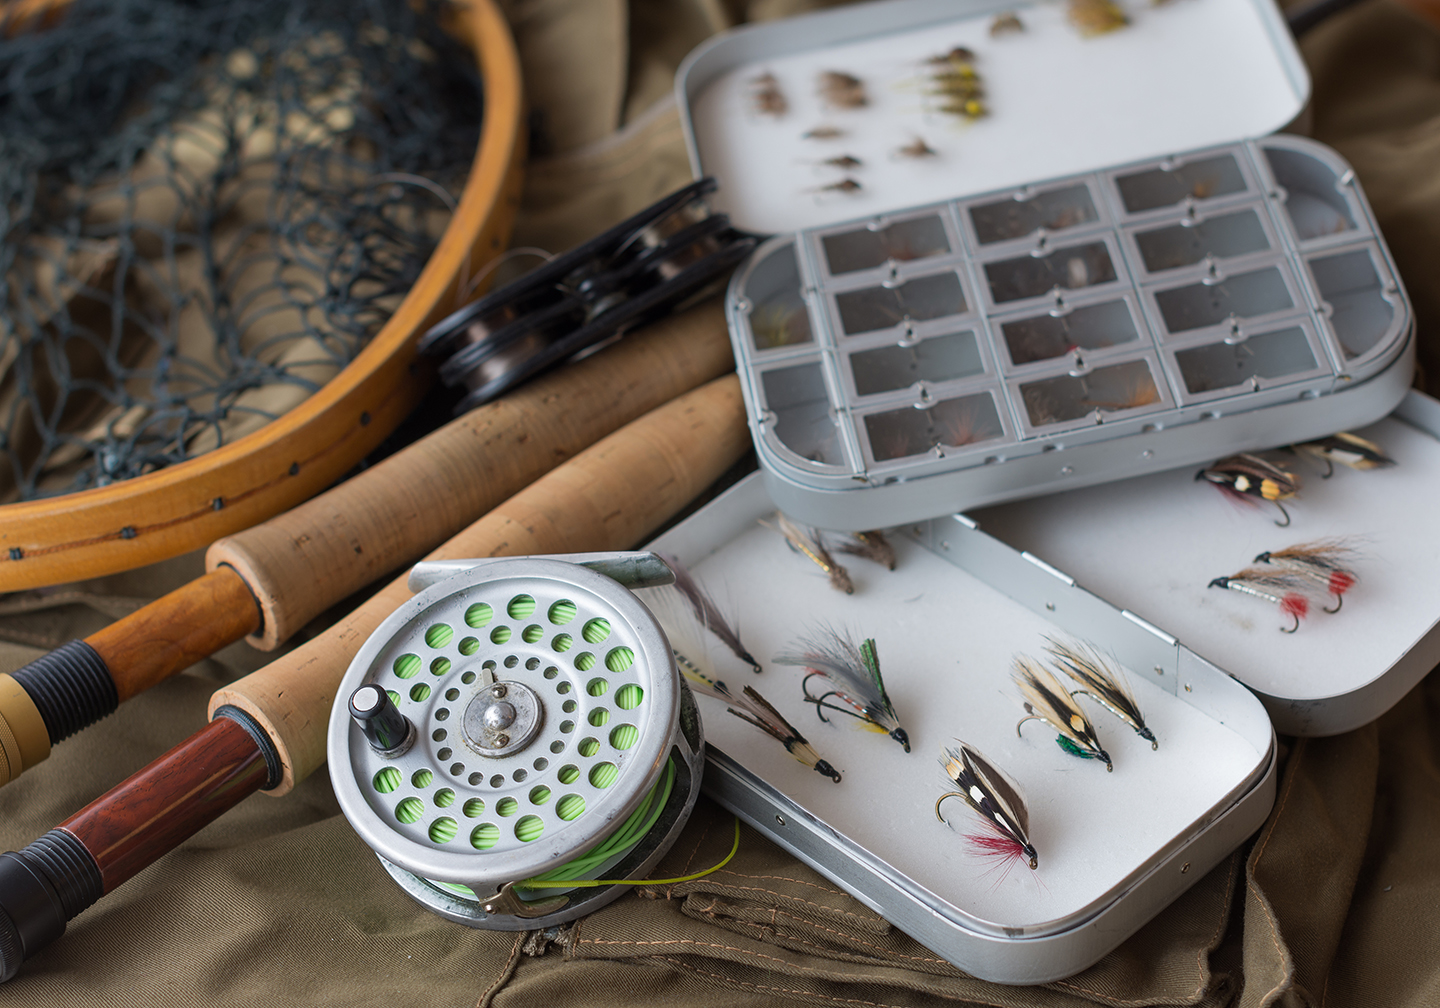 A selection of different fly fishing gear, including a reel, two rods, a net, and a selection of fishing flies.